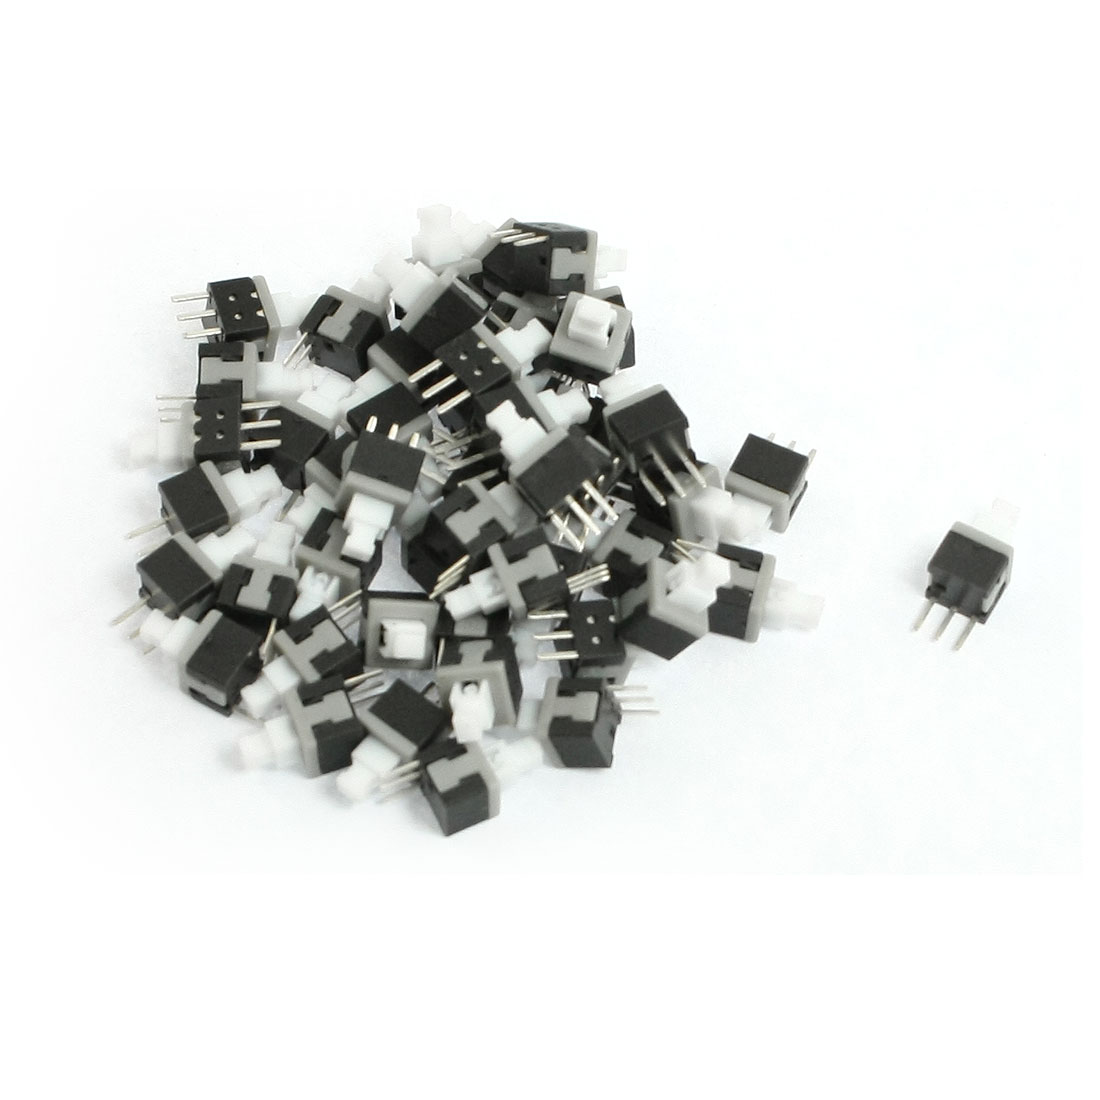 50 Pcs Latching Contat Type Mini Push Button Switches 5.8mm x 5.8mm